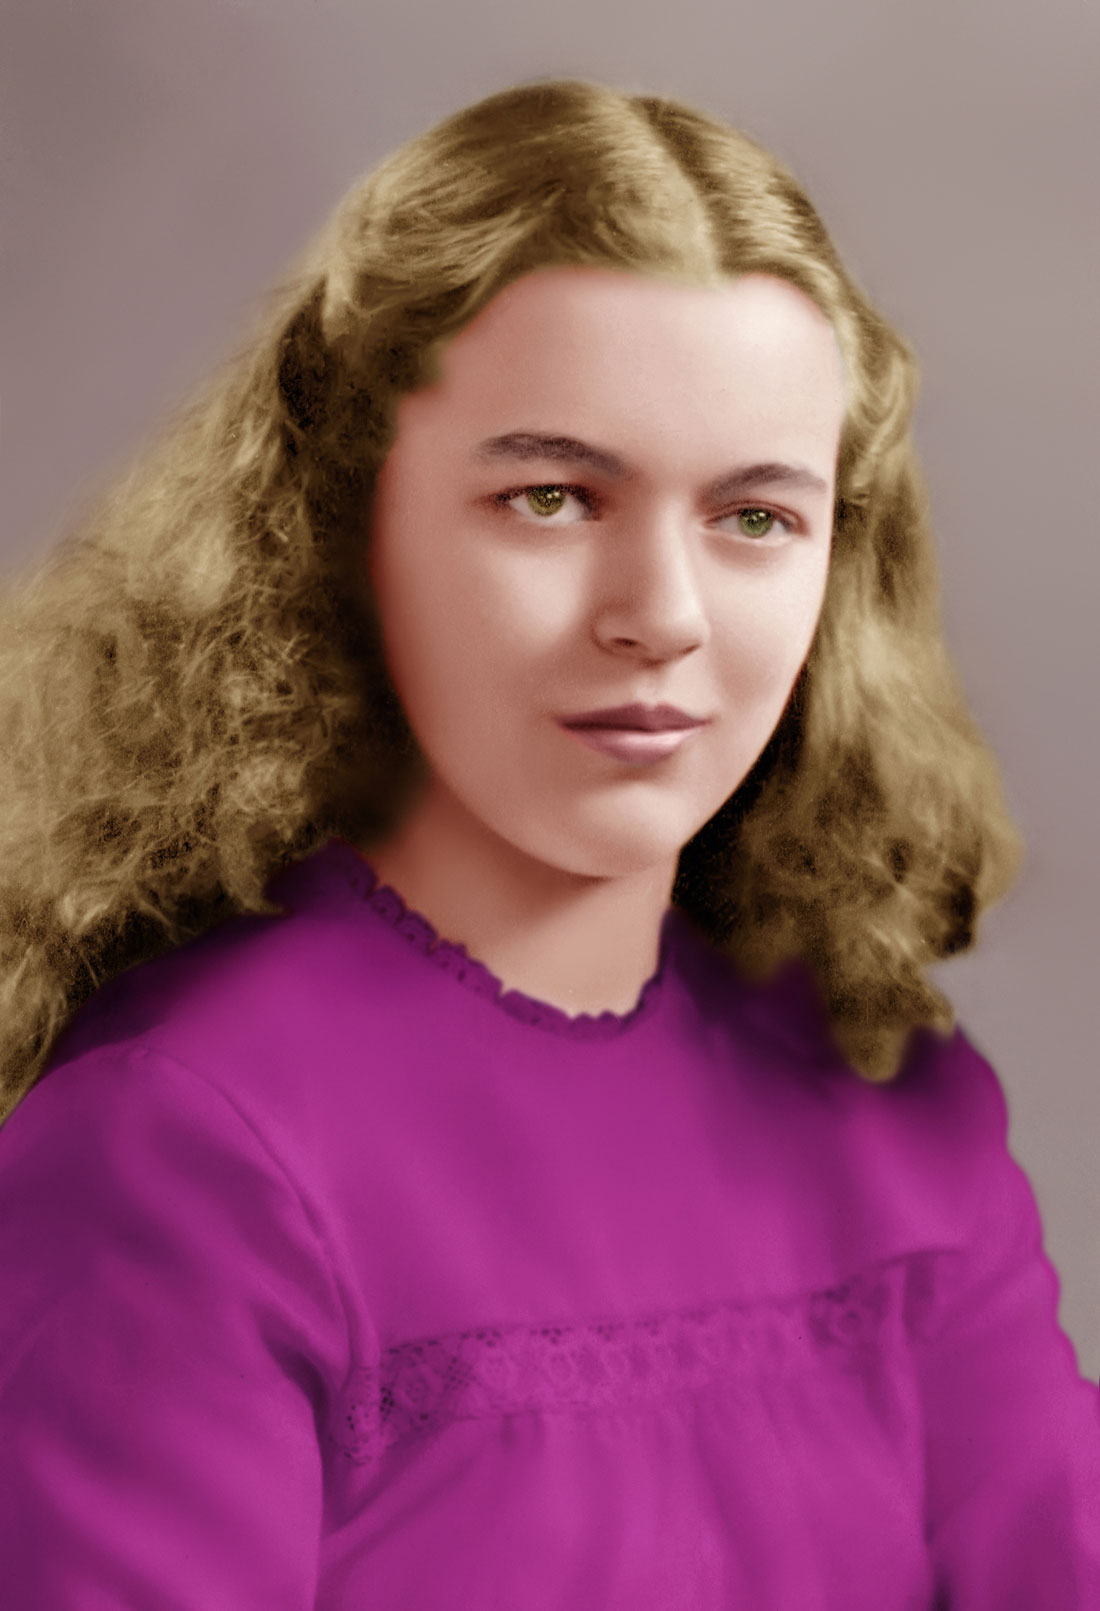 restored and colored photo fixed using photoshop